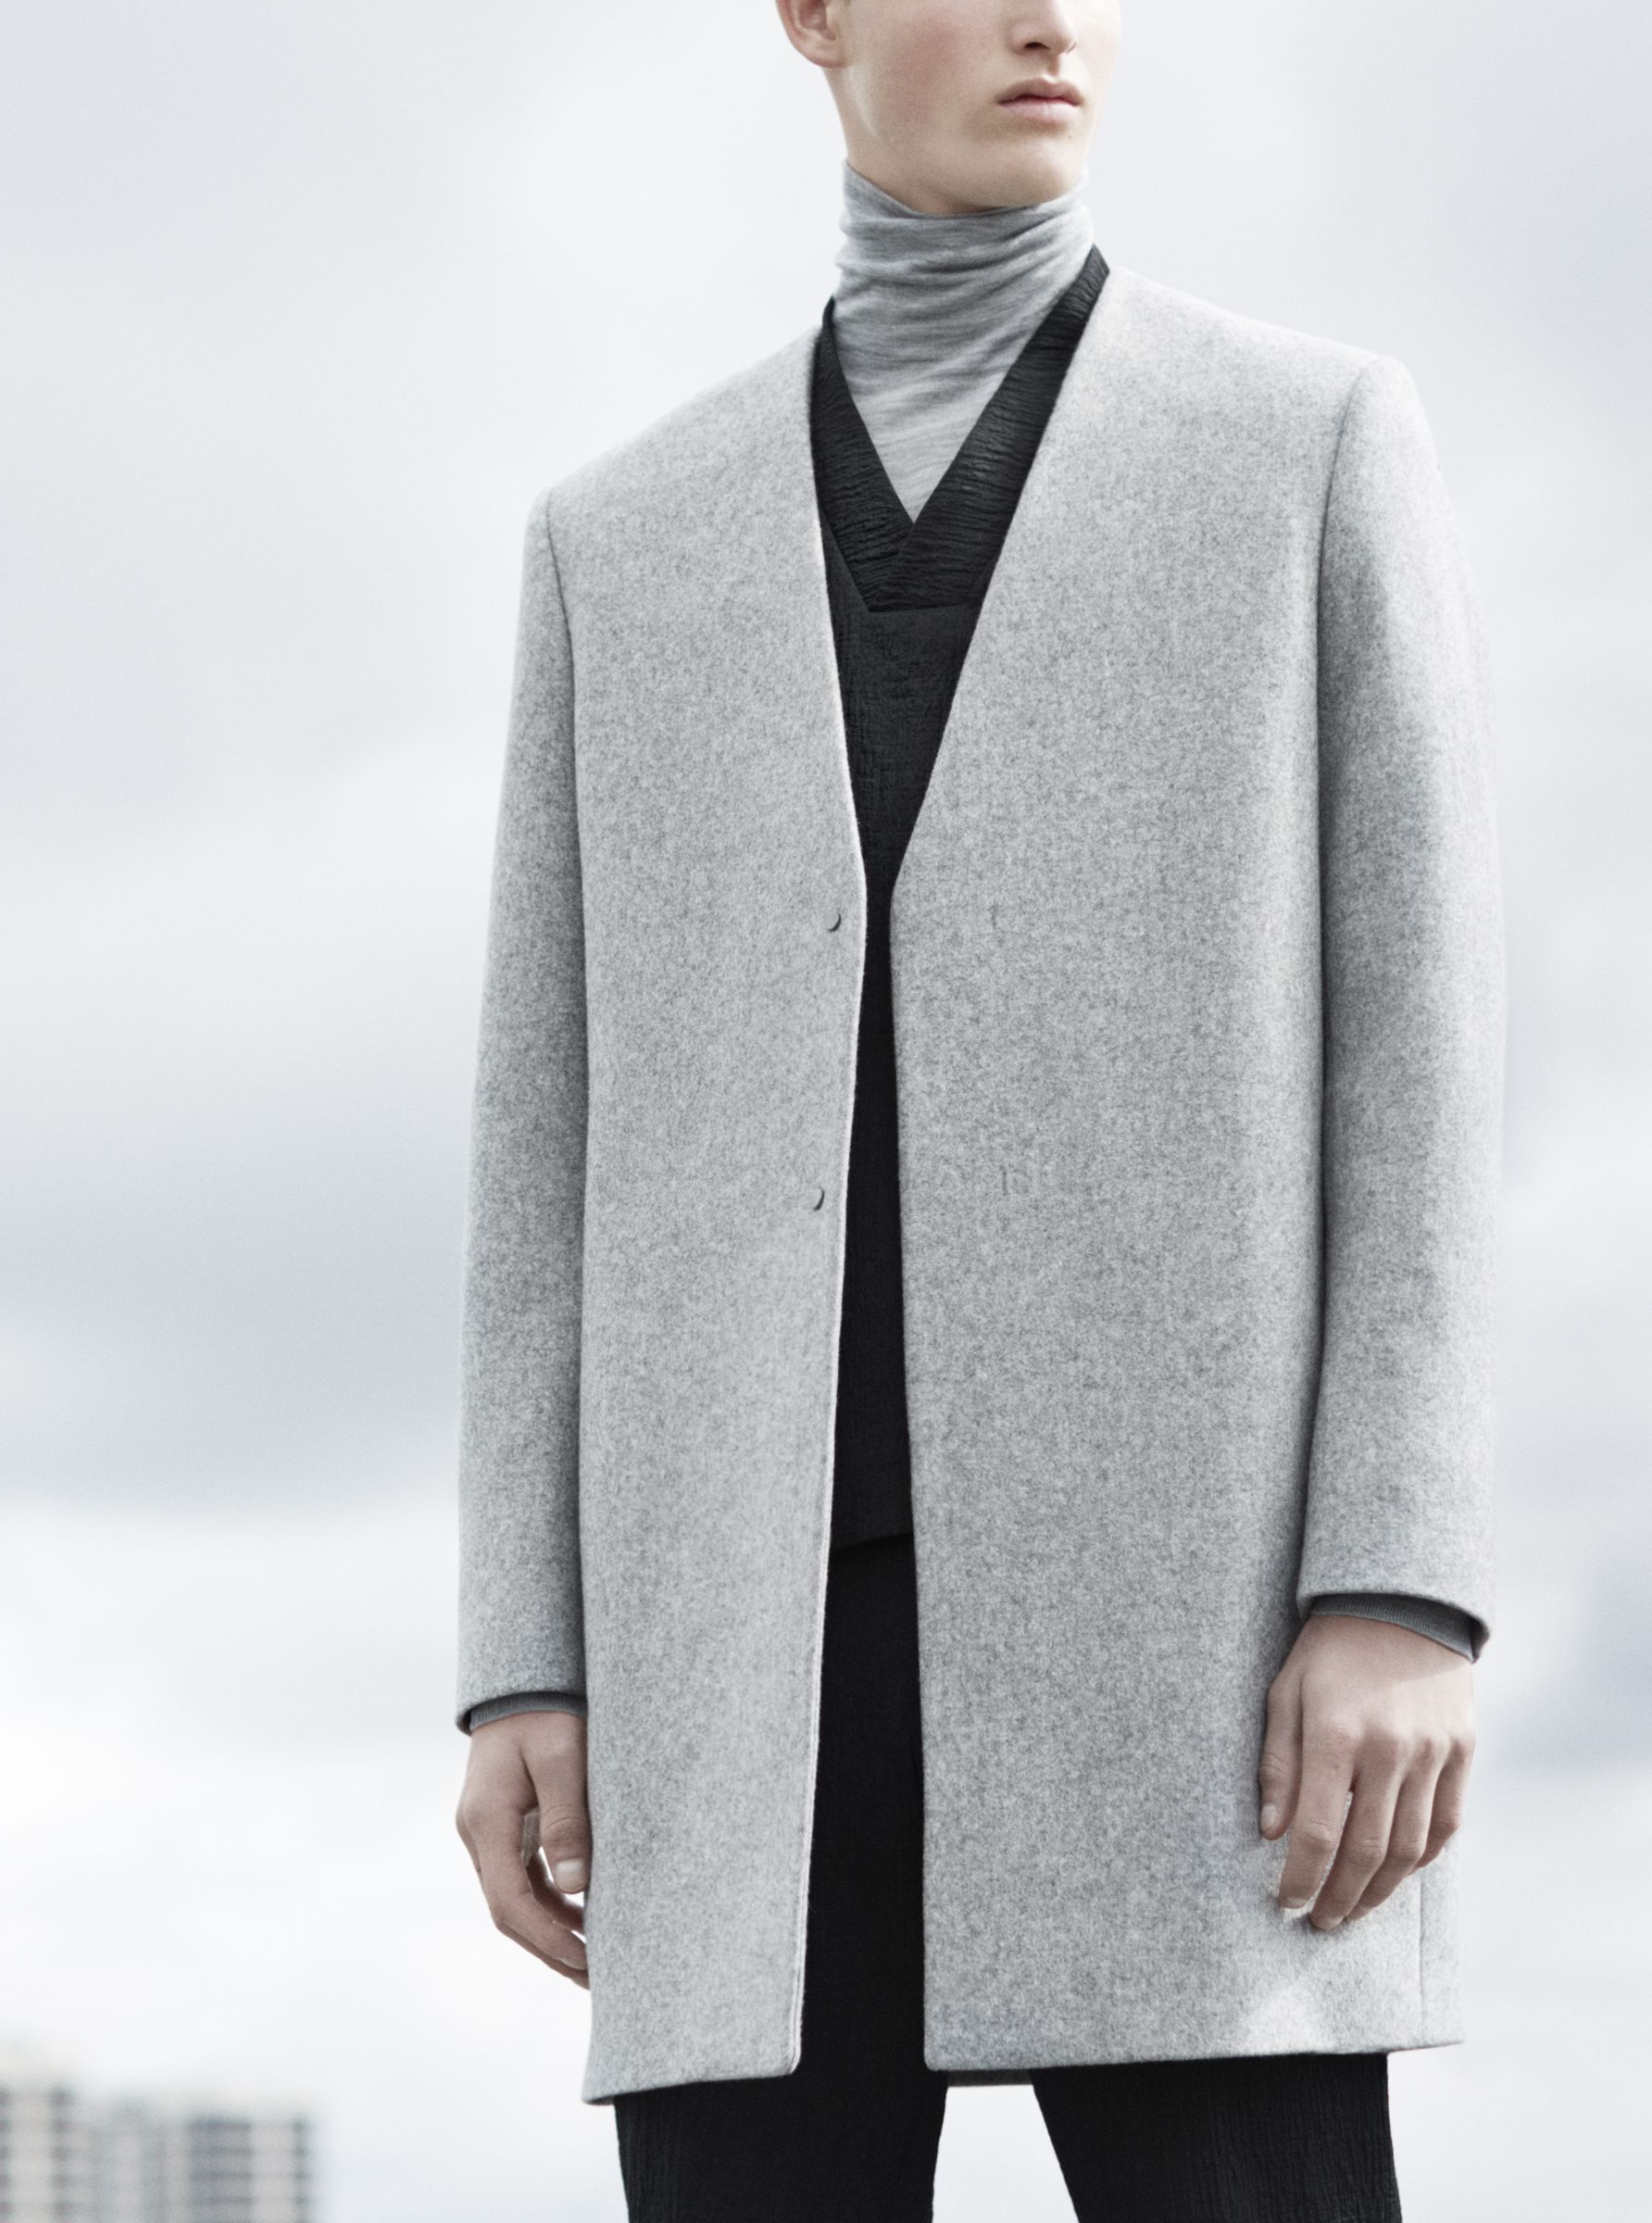 COS | Our new coats and jackets | Dress Well | Pinterest ...